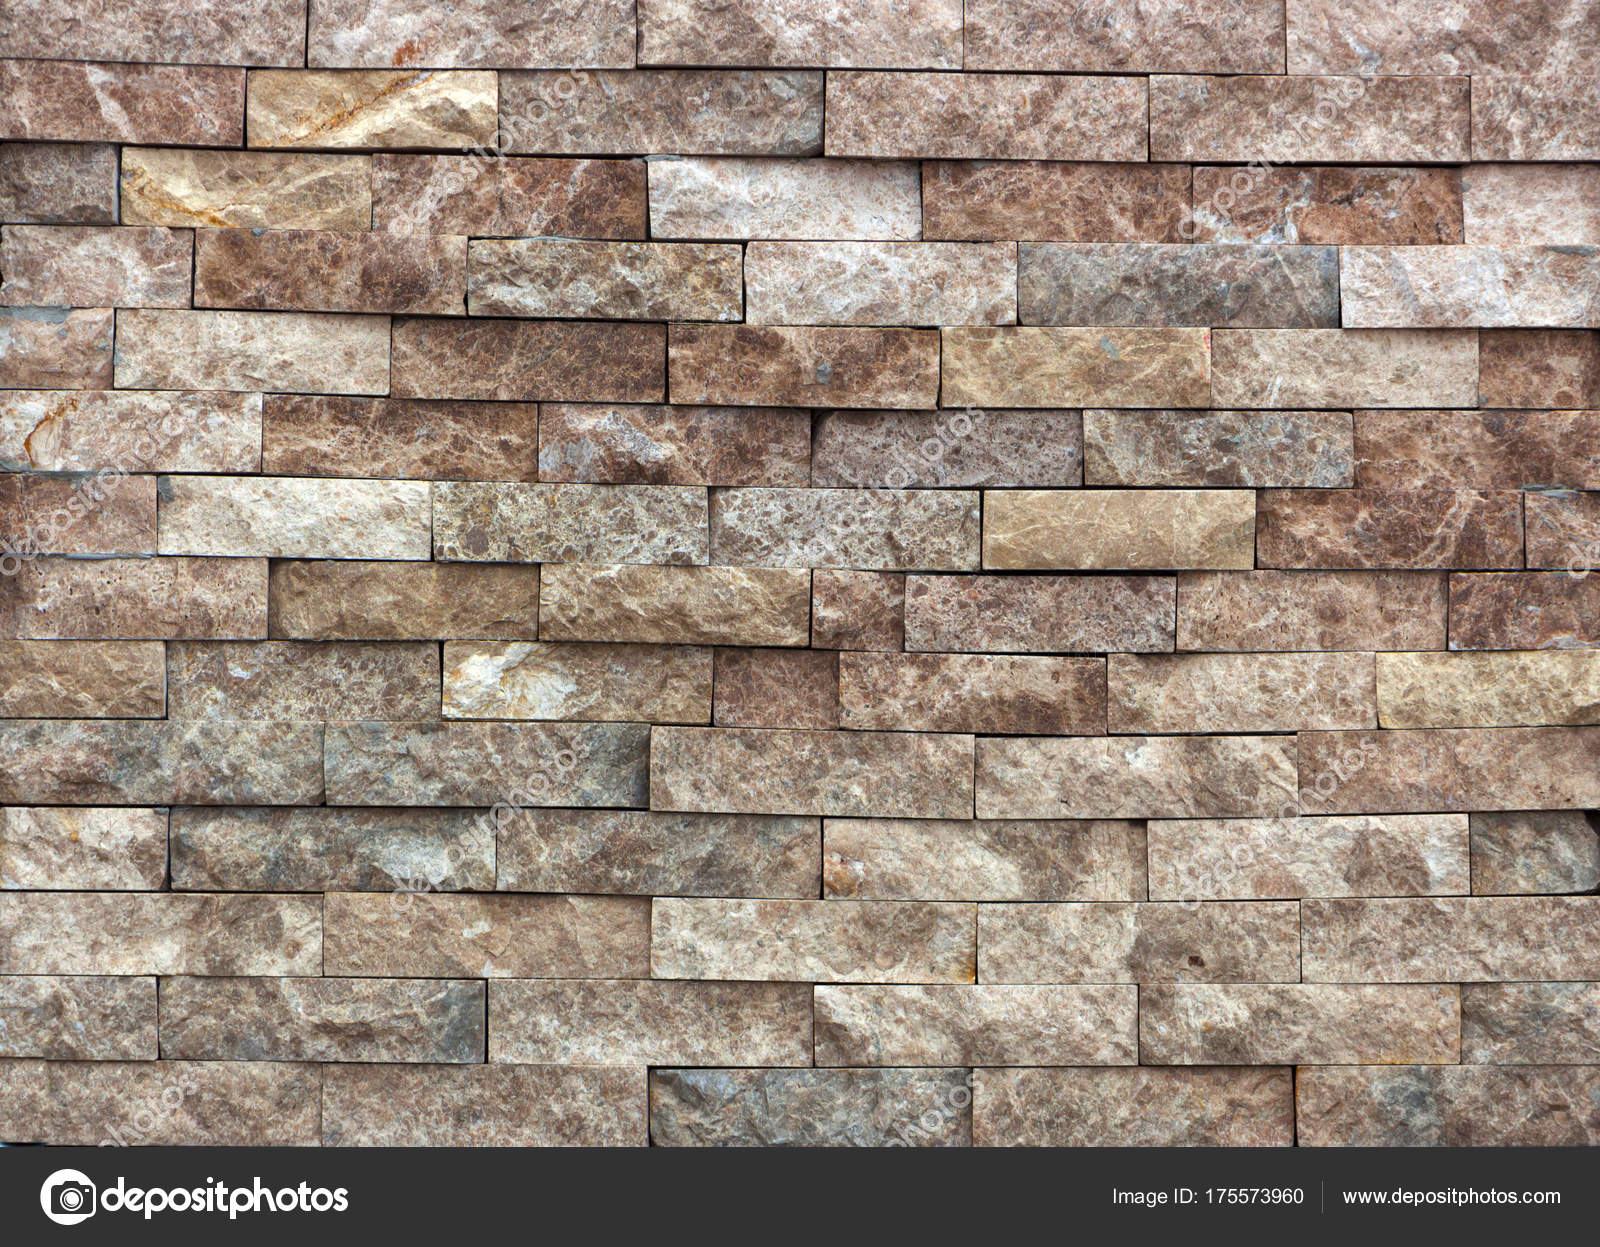 Marble texture decorative brick, wall tiles made of natural stone. Building  materials. 8